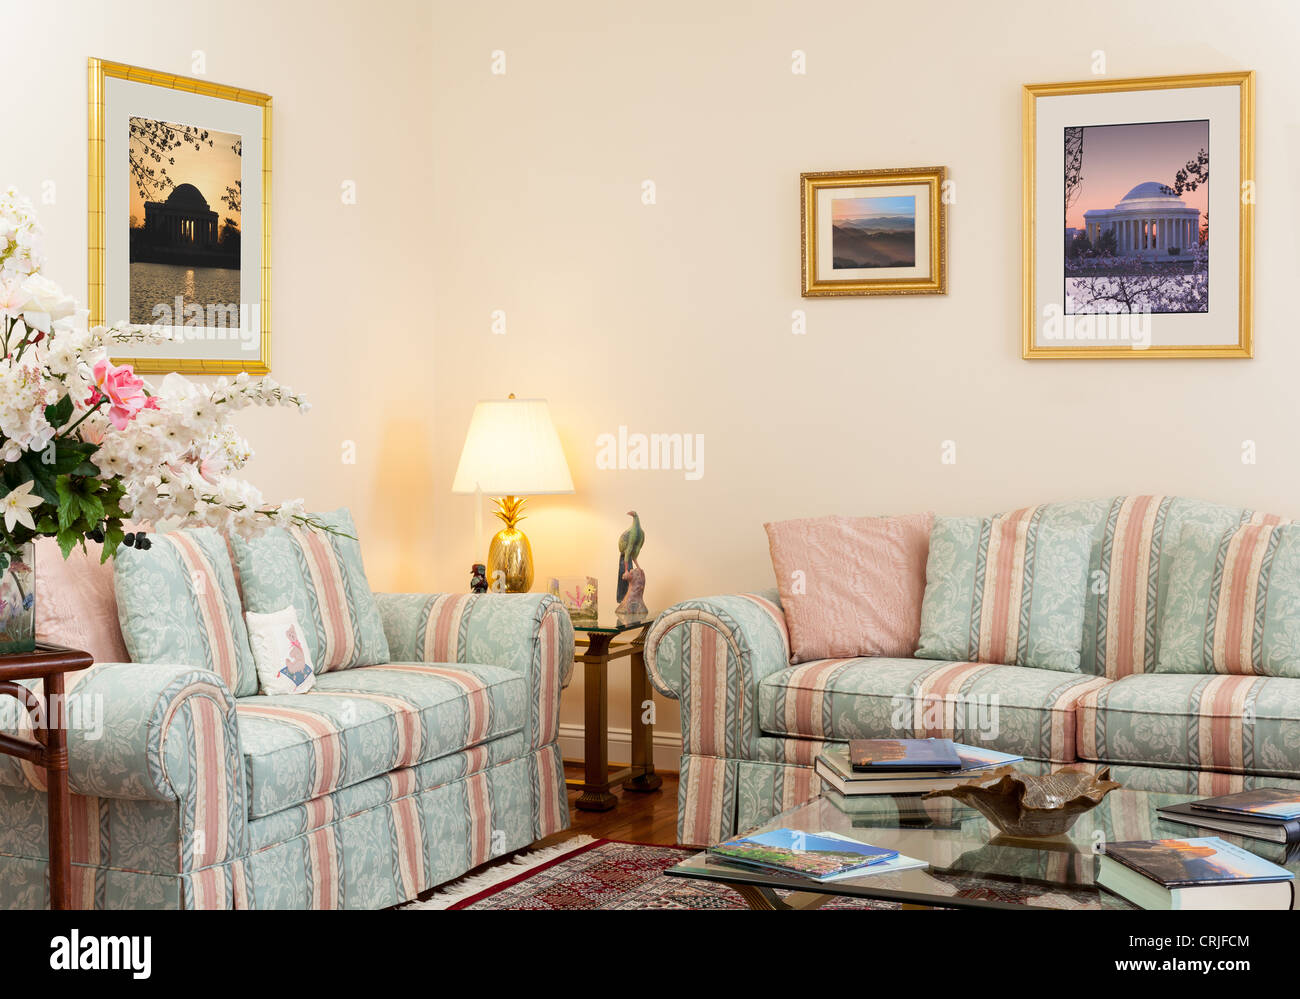 Living room with sofa - Stock Image